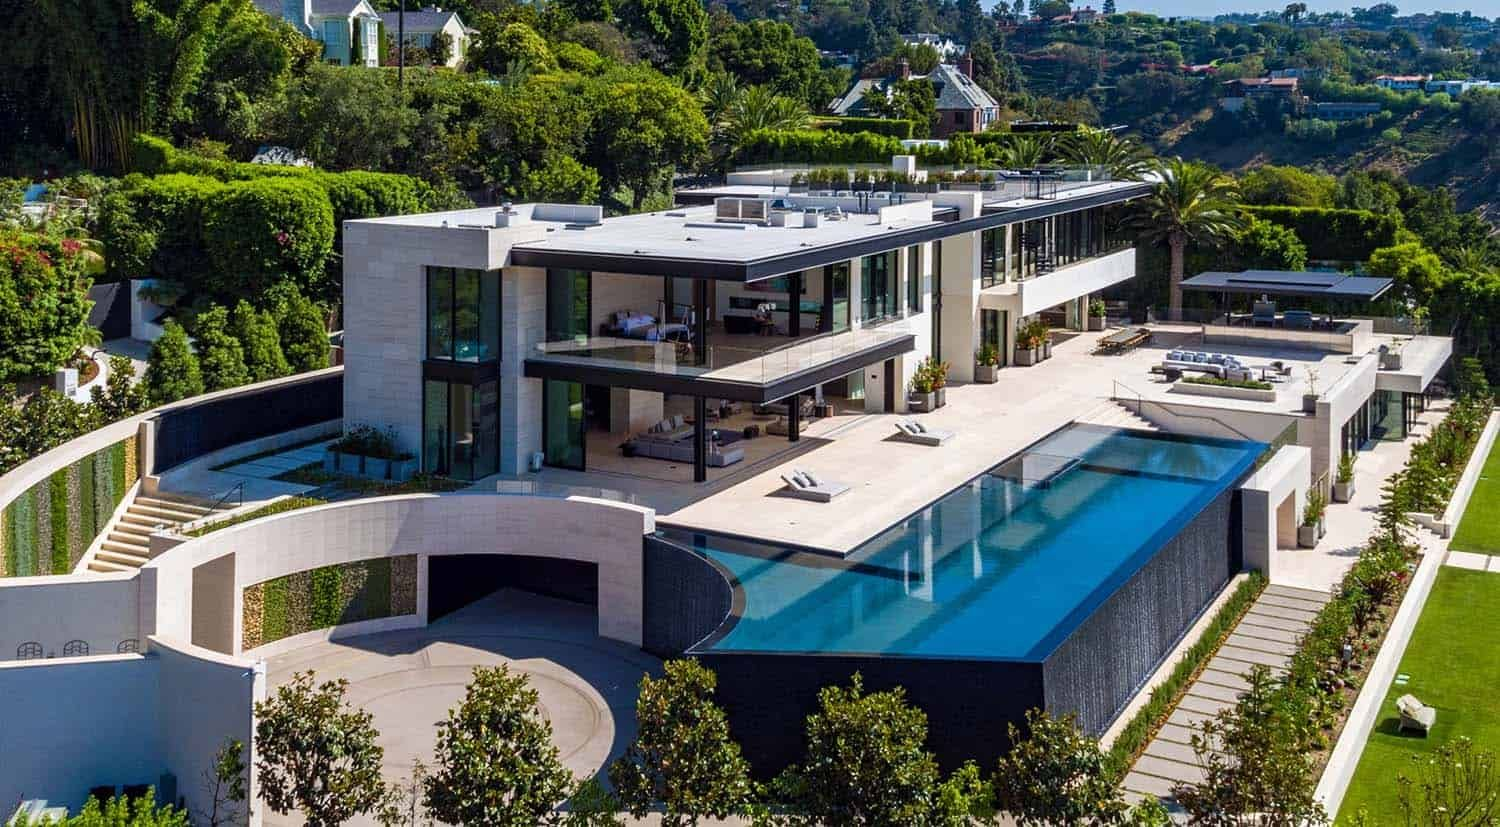 Jaw Dropping Dream Home Overlooking The Los Angeles Skyline Luxury Homes Dream Houses Dream Home Design Dream House Exterior